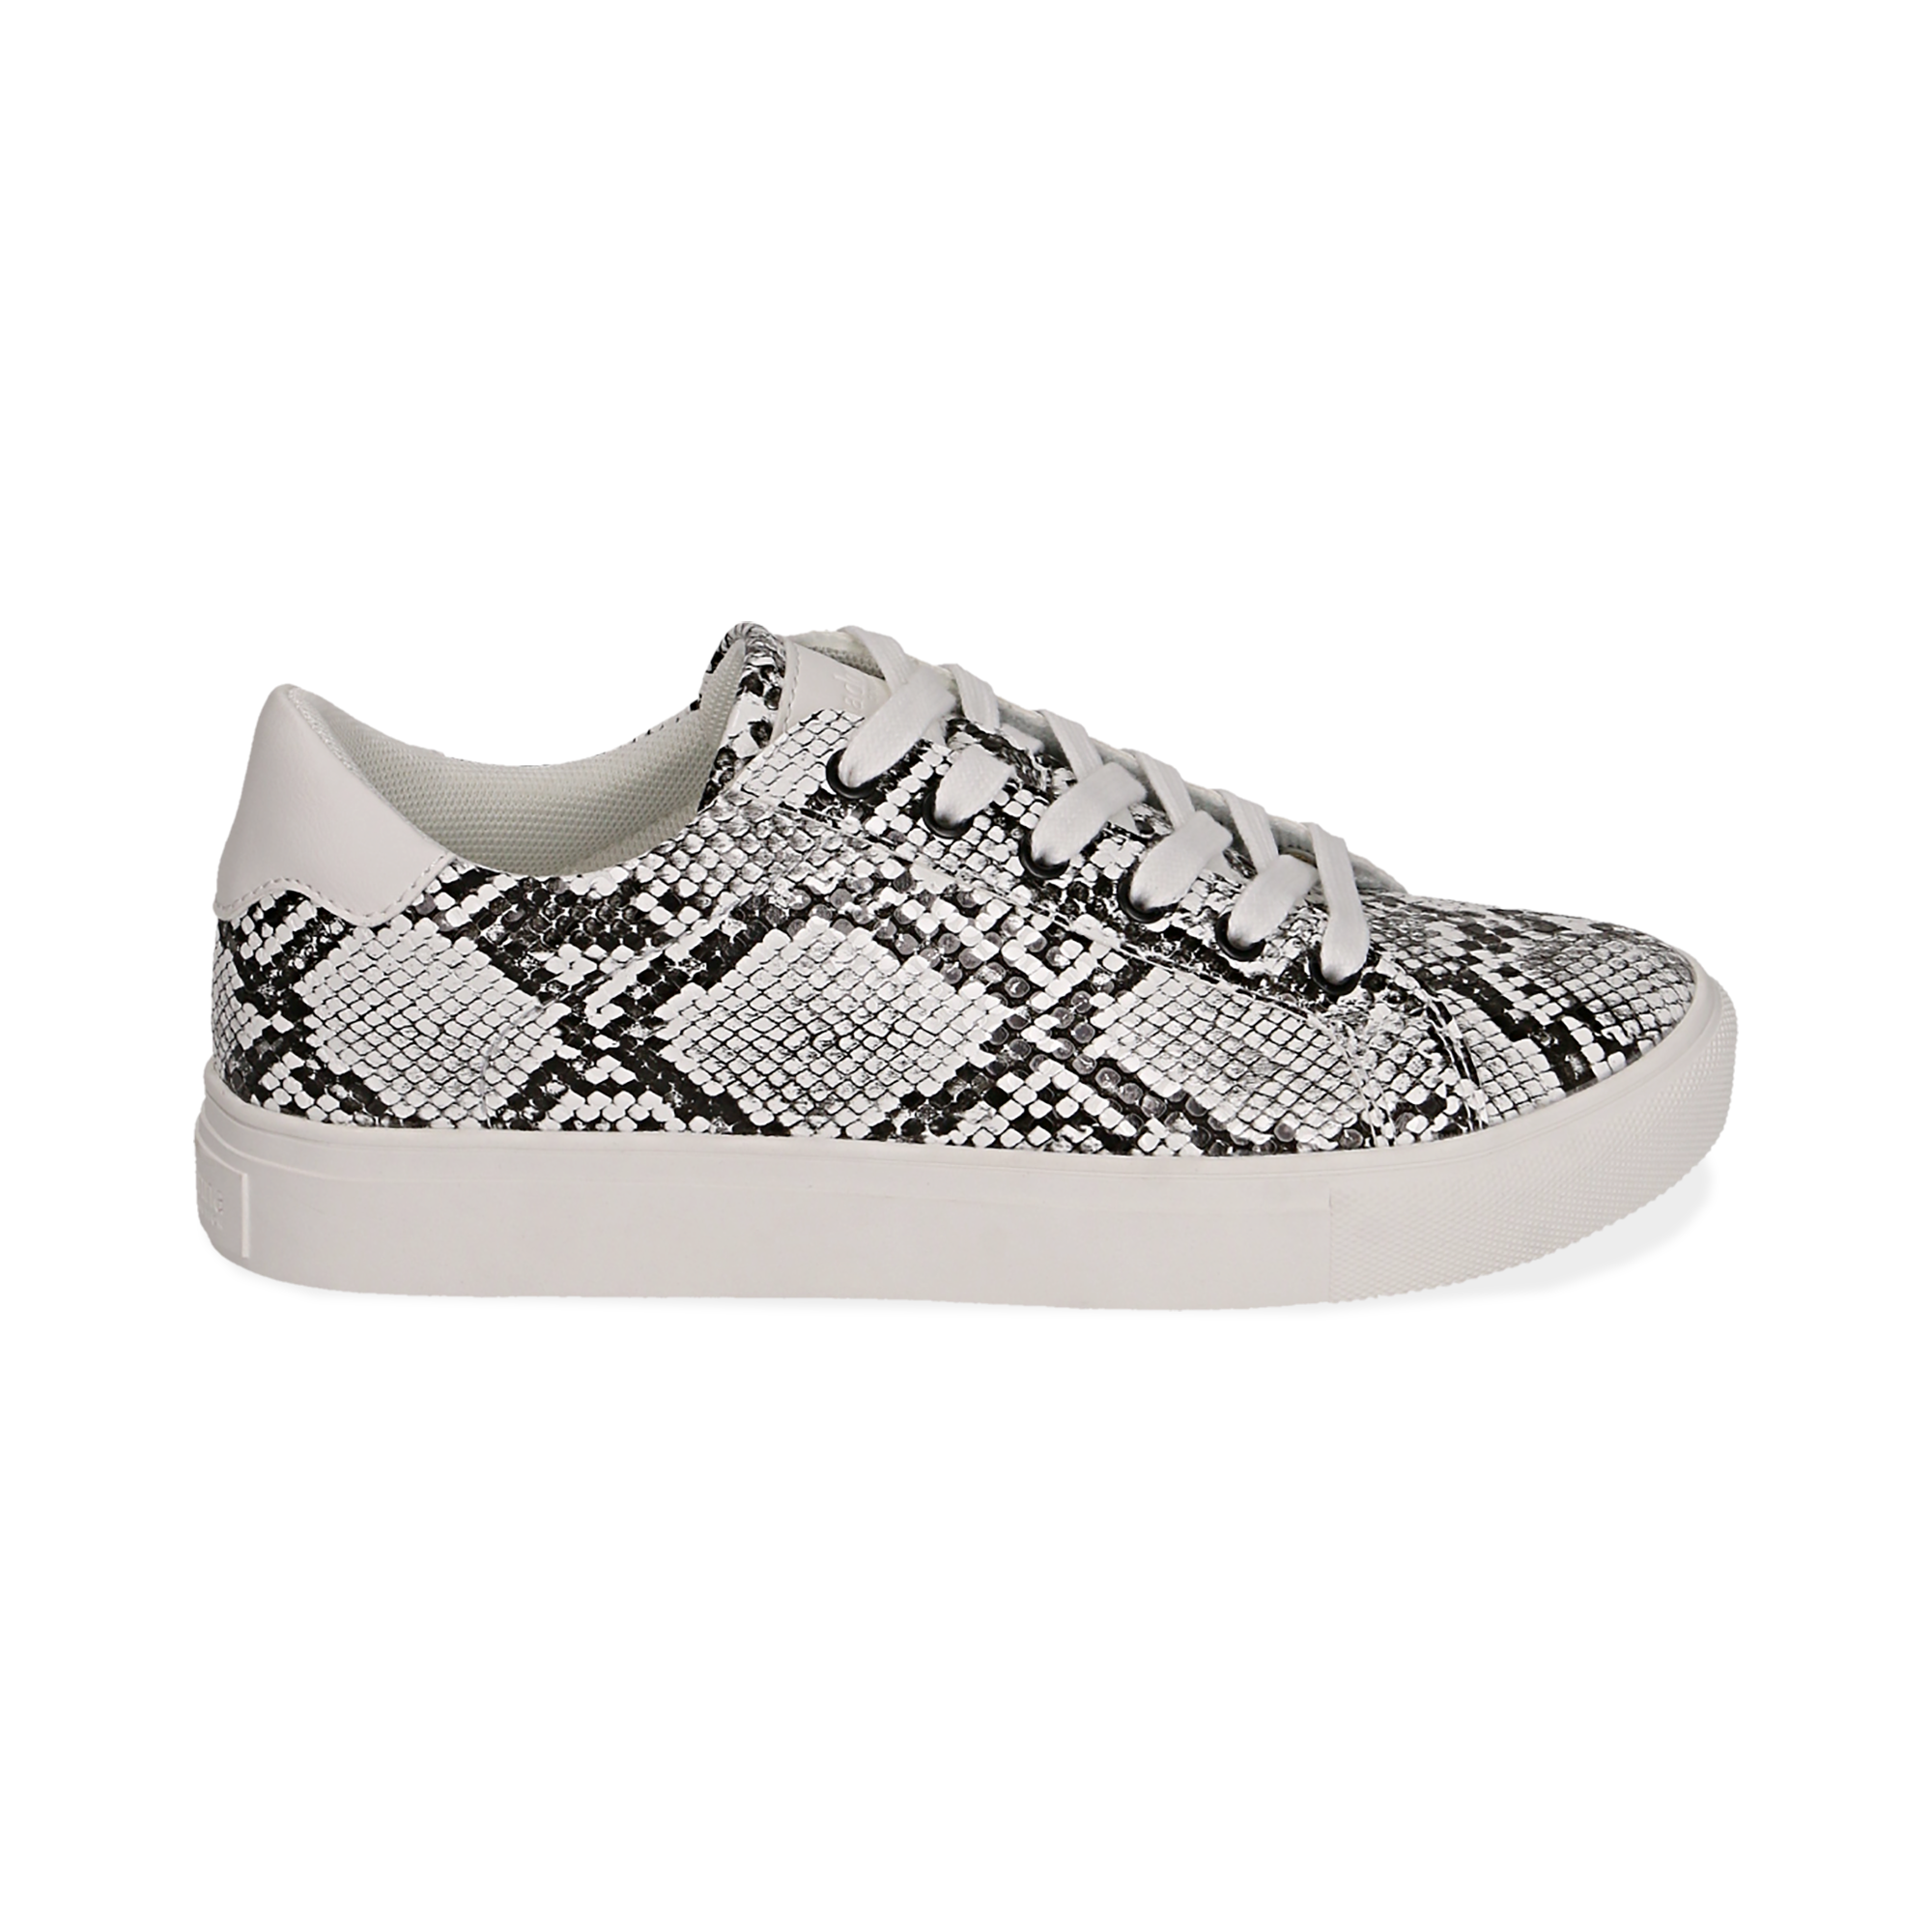 Sneakers en ecopiel con estampado de serpiente color blanco/negro